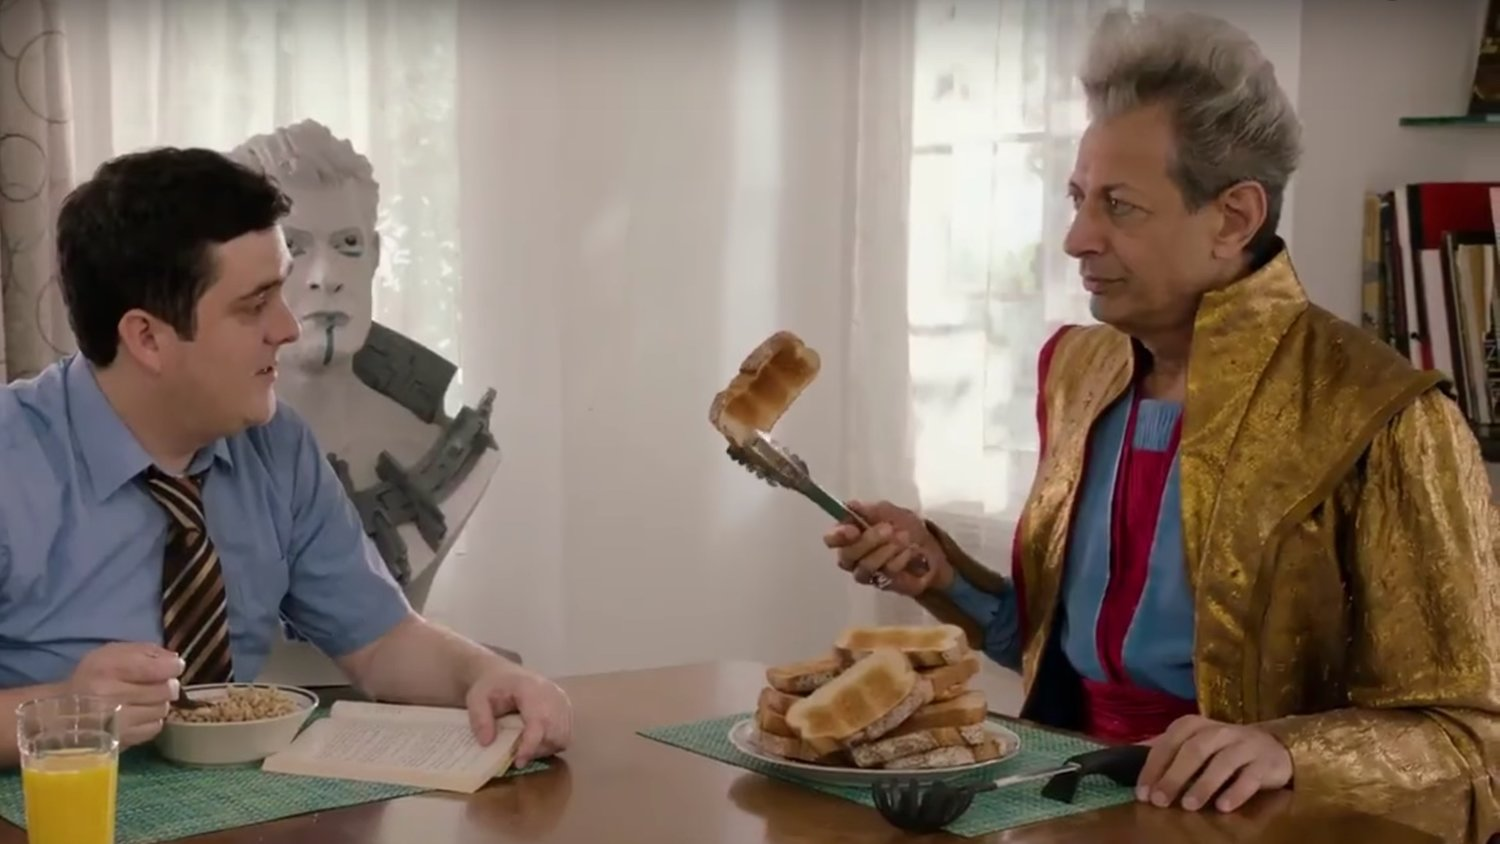 The Grandmaster Starts a New Life on Earth with Thor's old